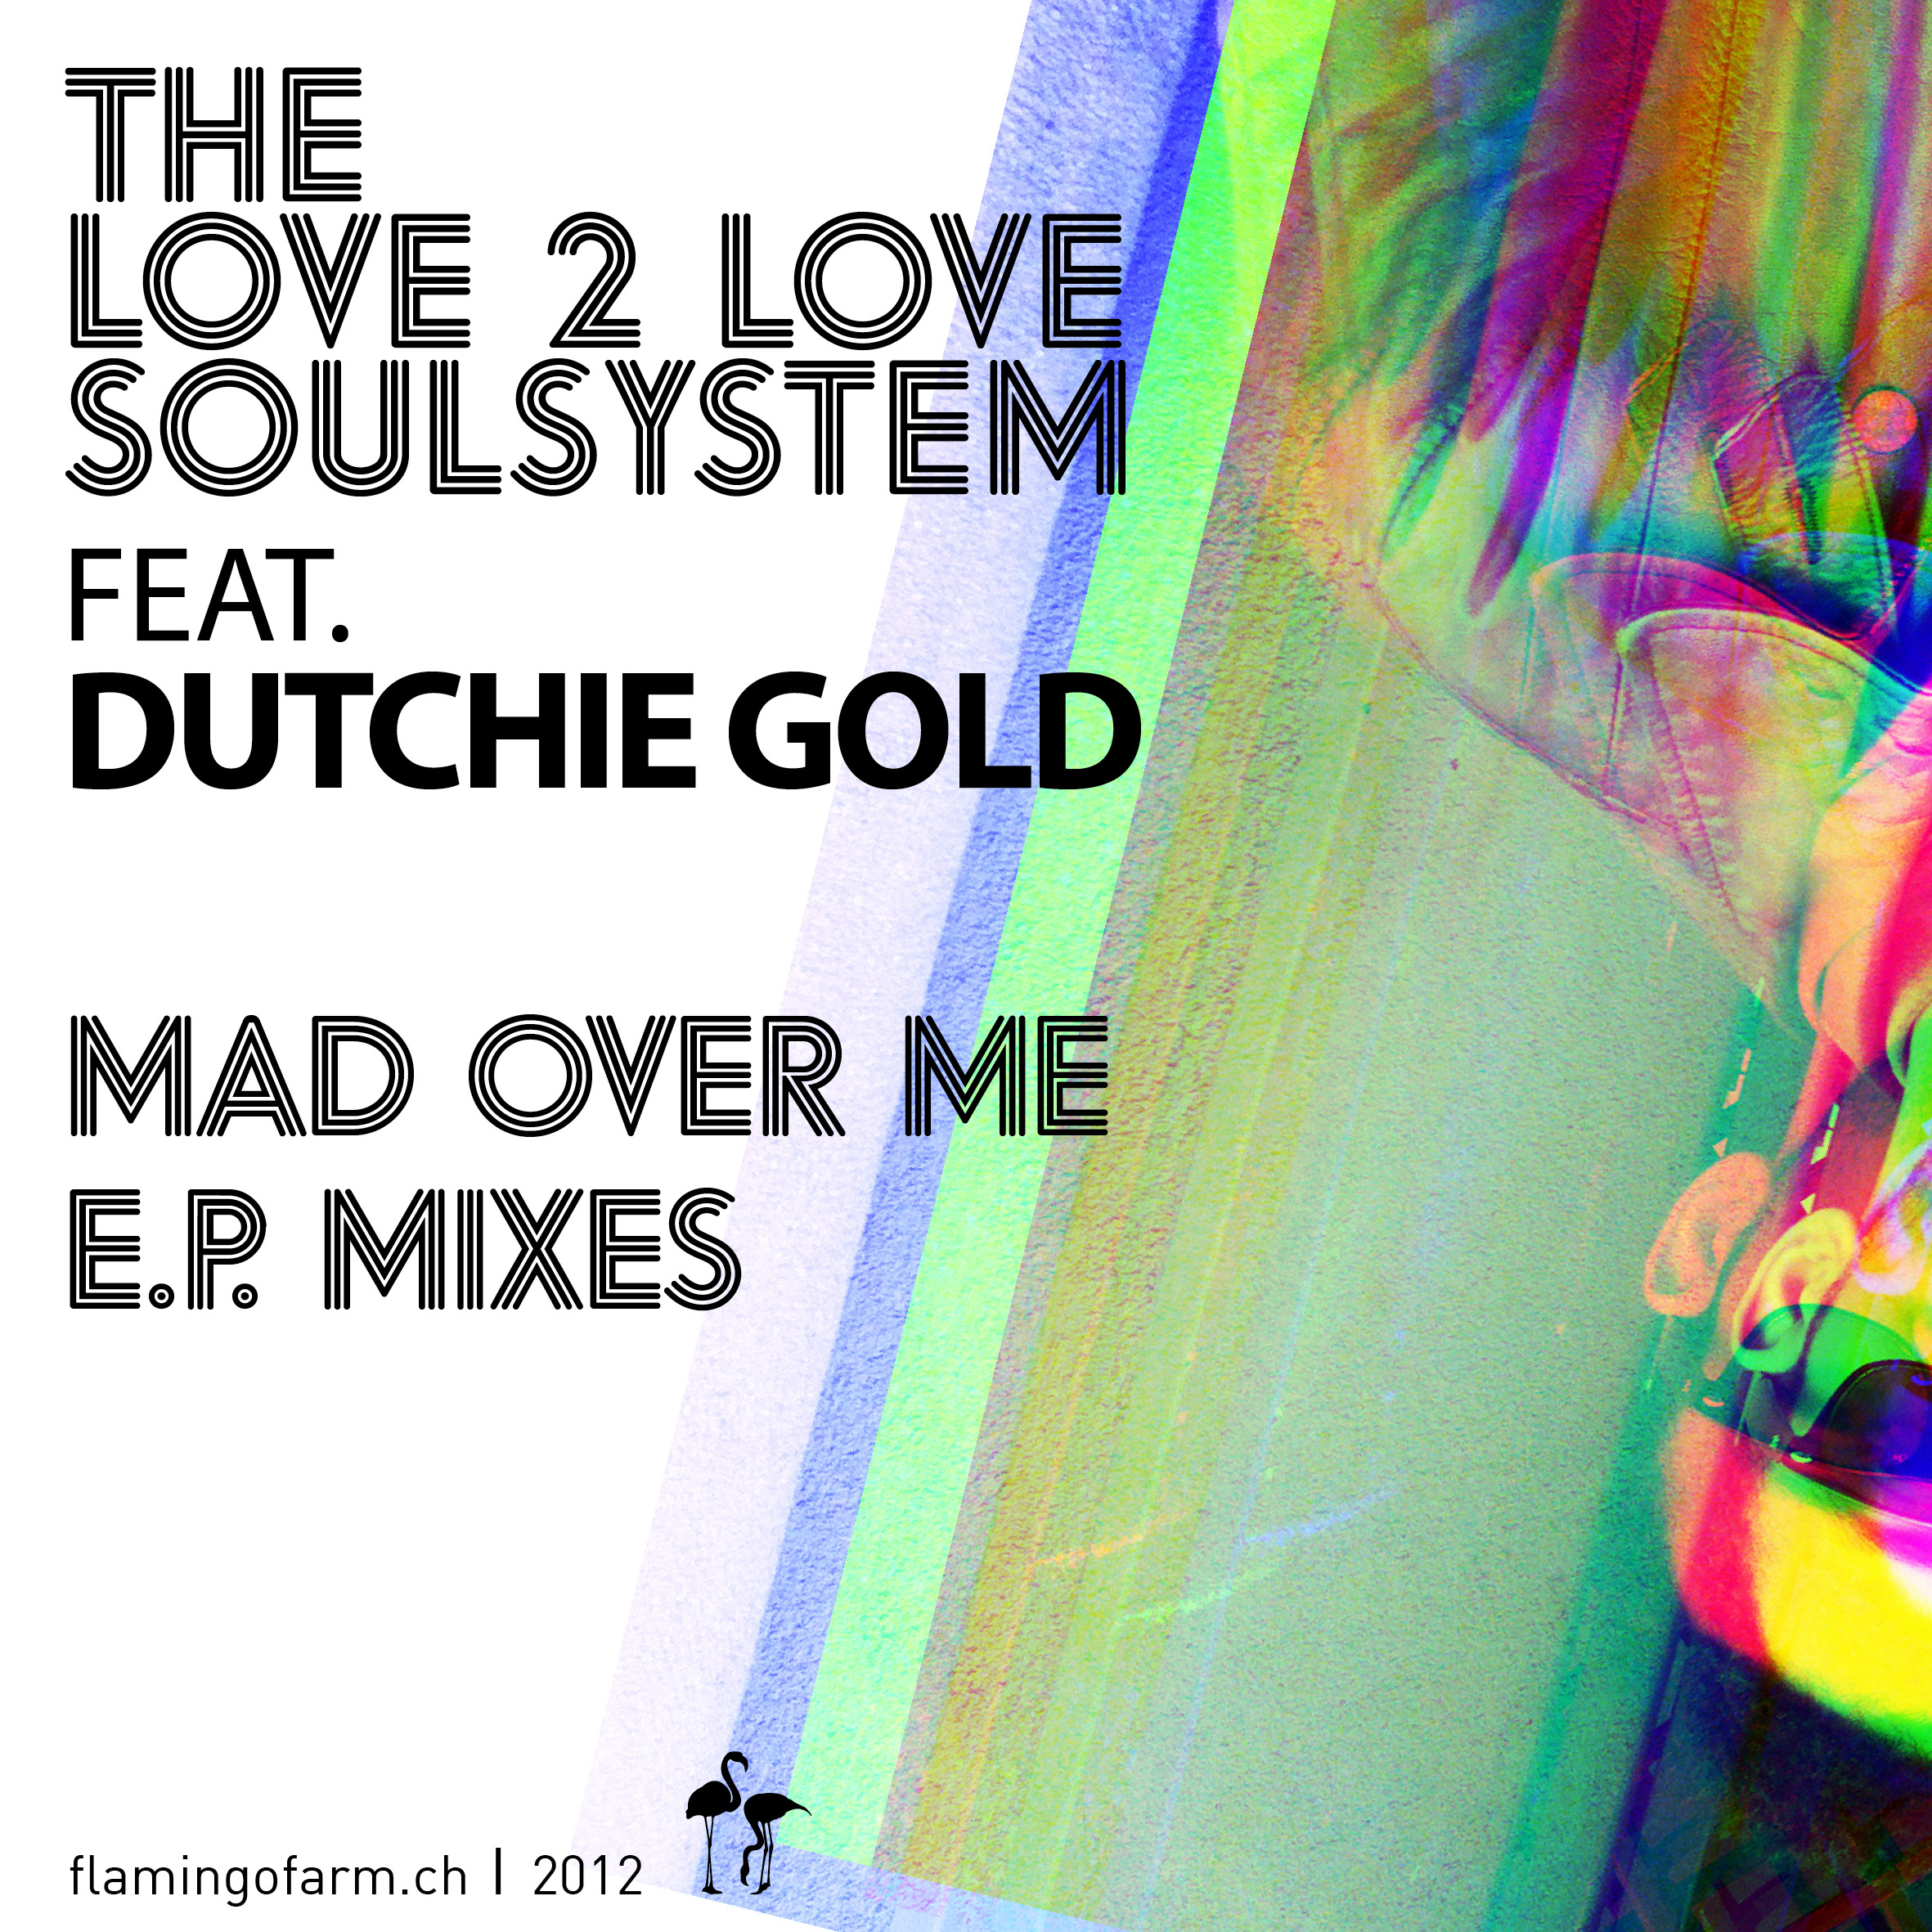 Love2LoveSoulsystem_feat Dutchie Gold_EP_ Trippic_Mad Over Me_300dpi